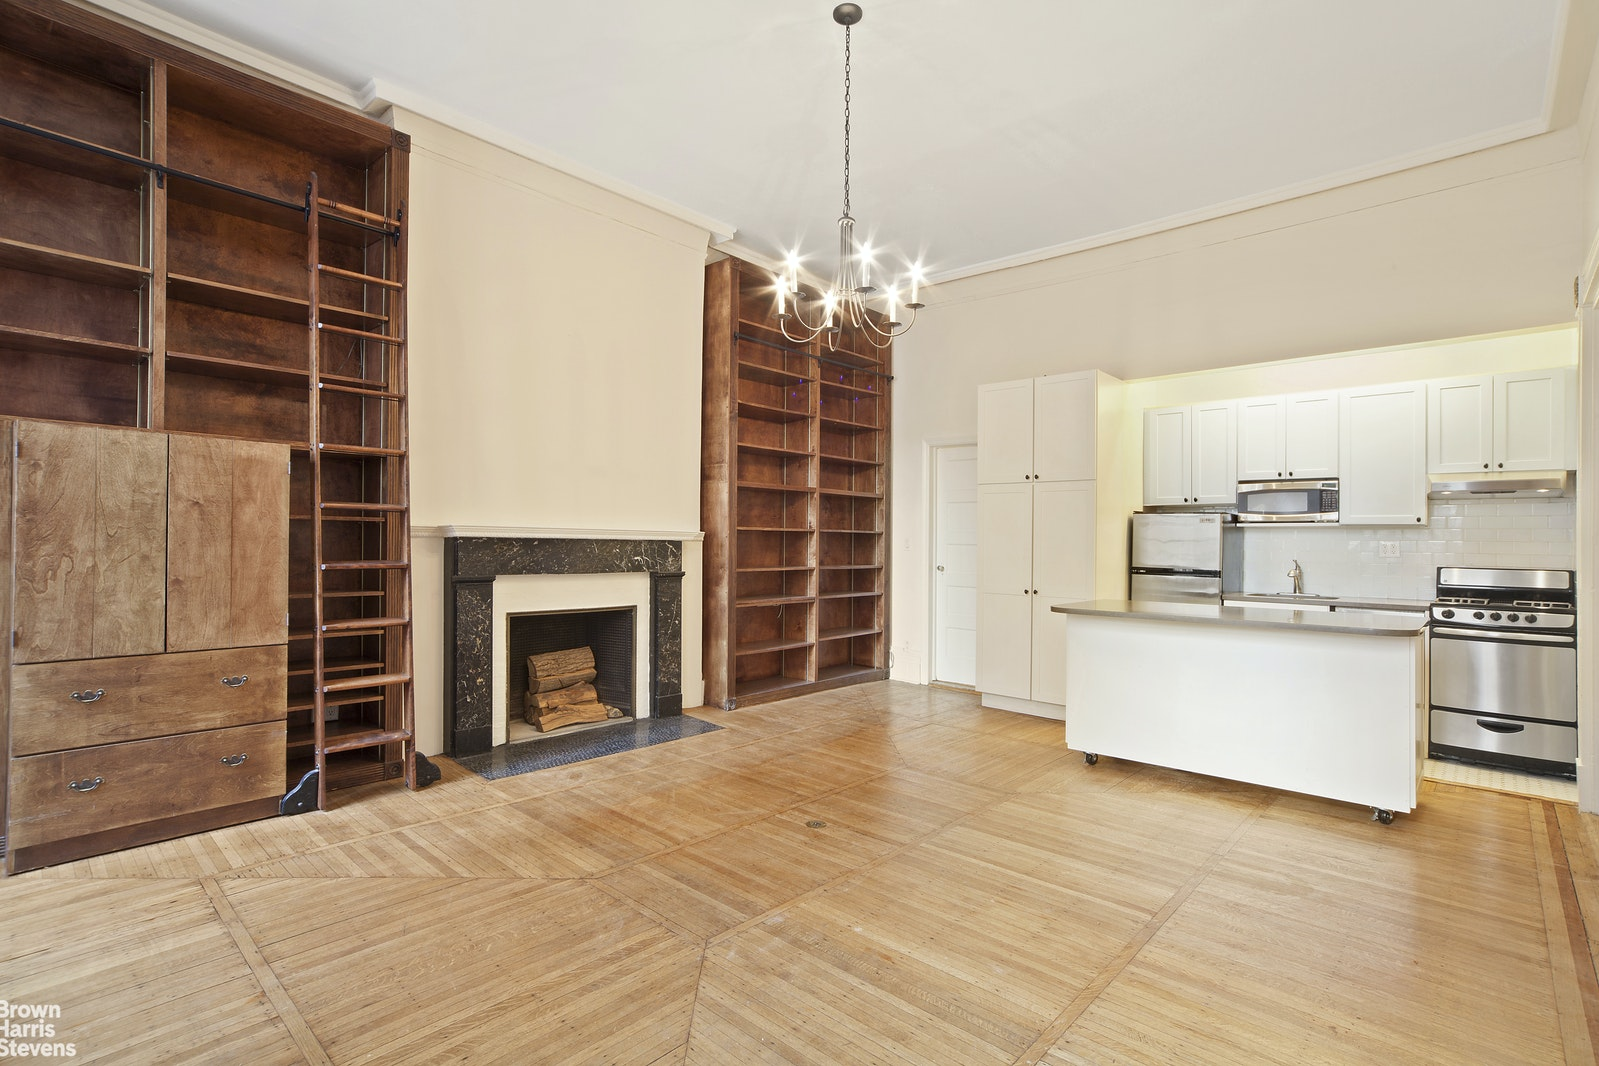 9 East 9th Street, Central Village, NYC, 10003, $10,995,000, Property For Sale, Halstead Real Estate, Photo 20